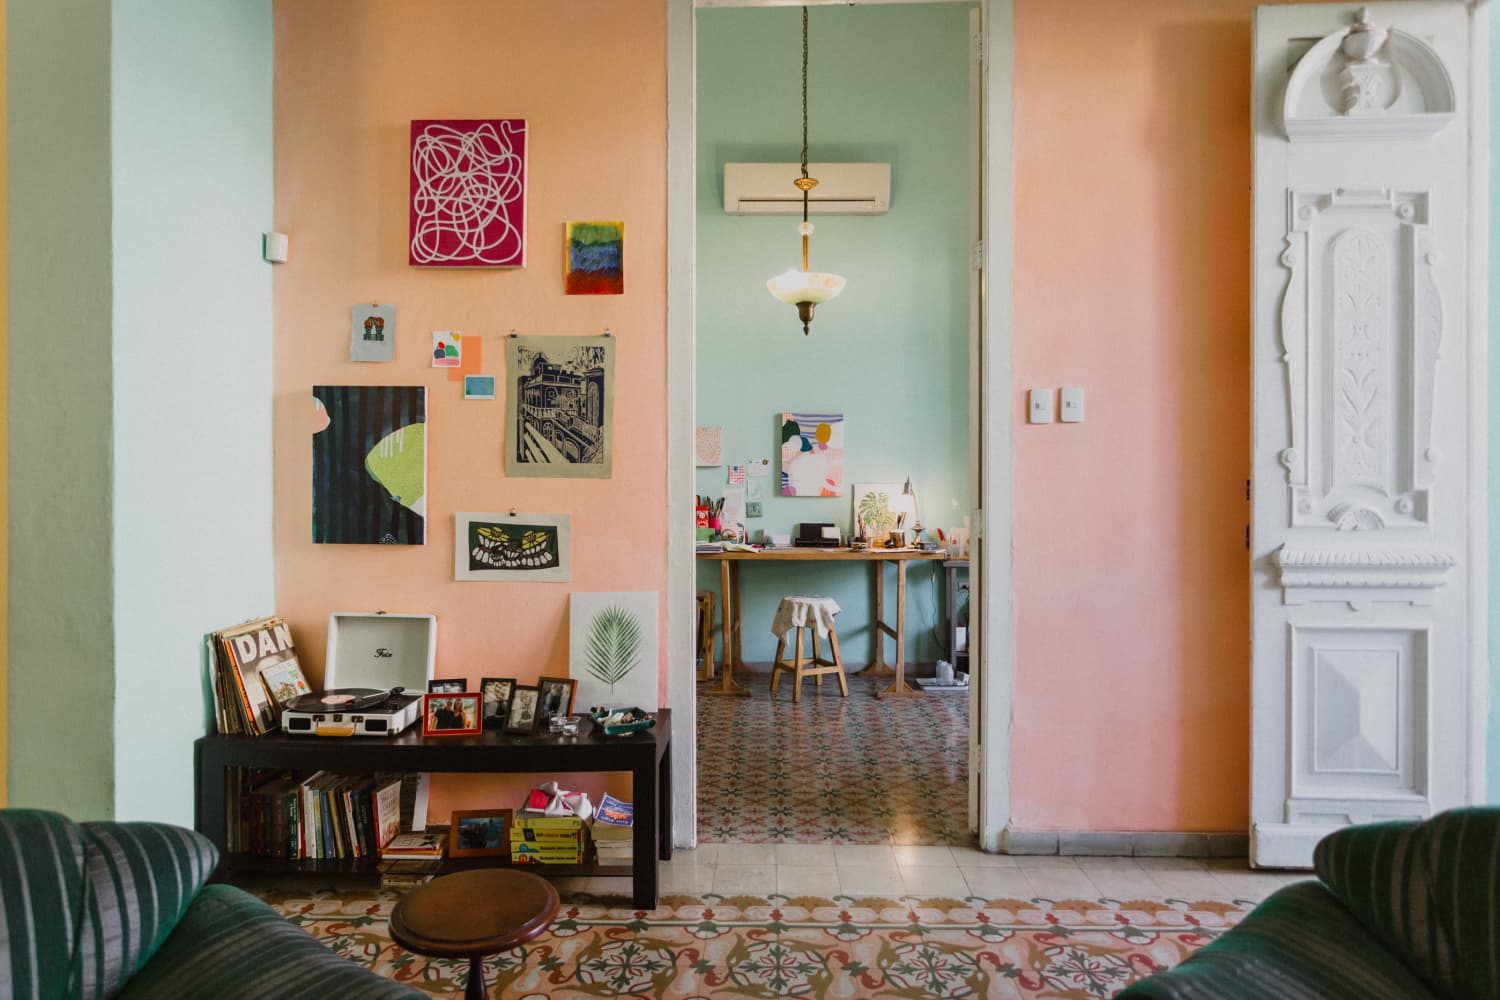 This 1920s Cuban Victorian Called 'The Turquoise House' Is a Perfect, Patterned, Colorful Dream